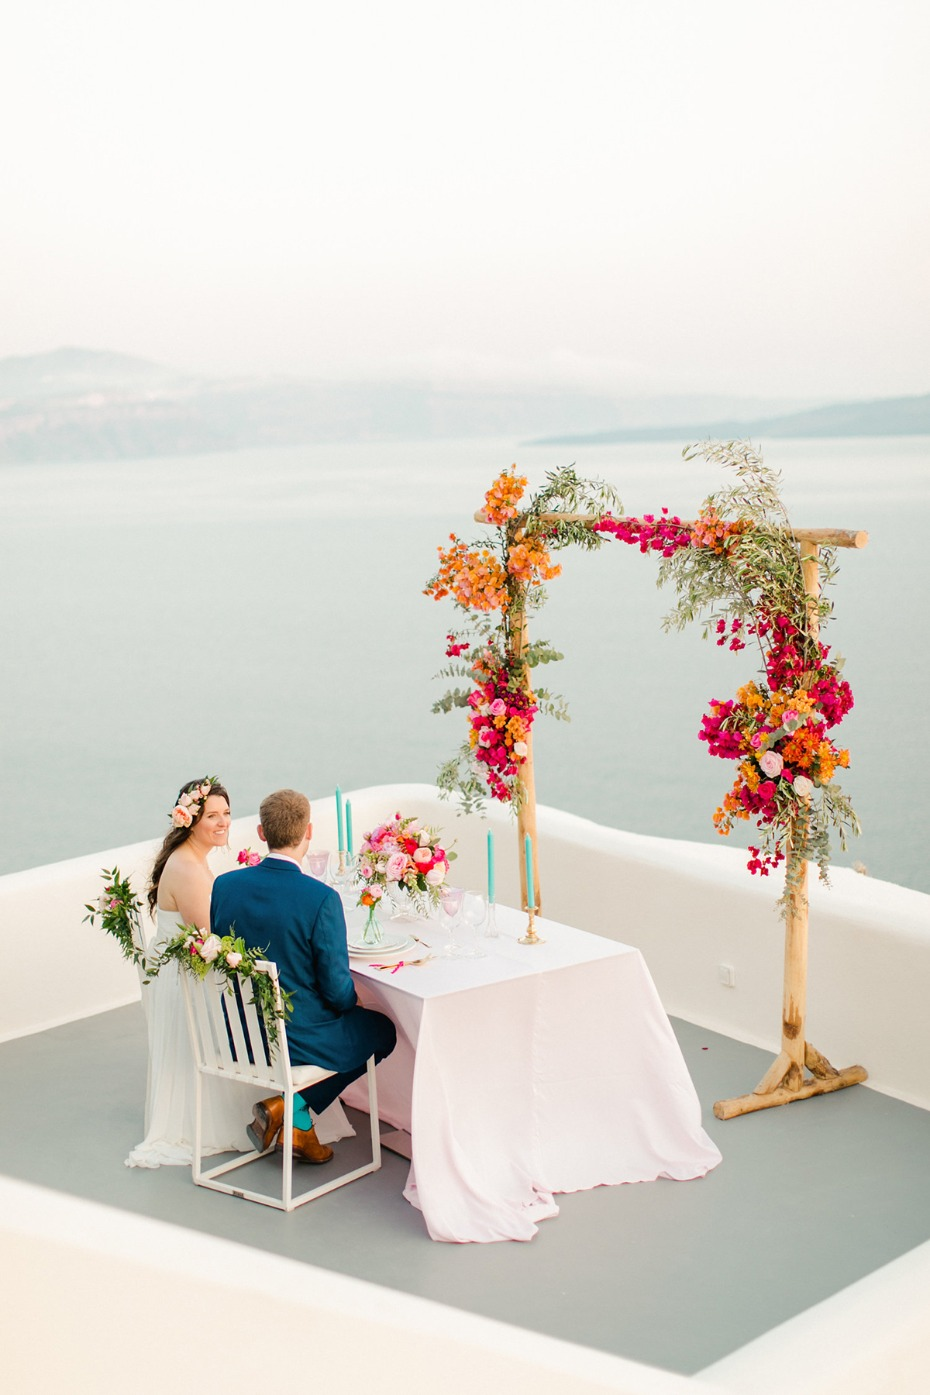 Romantic wedding dinner in Santorini